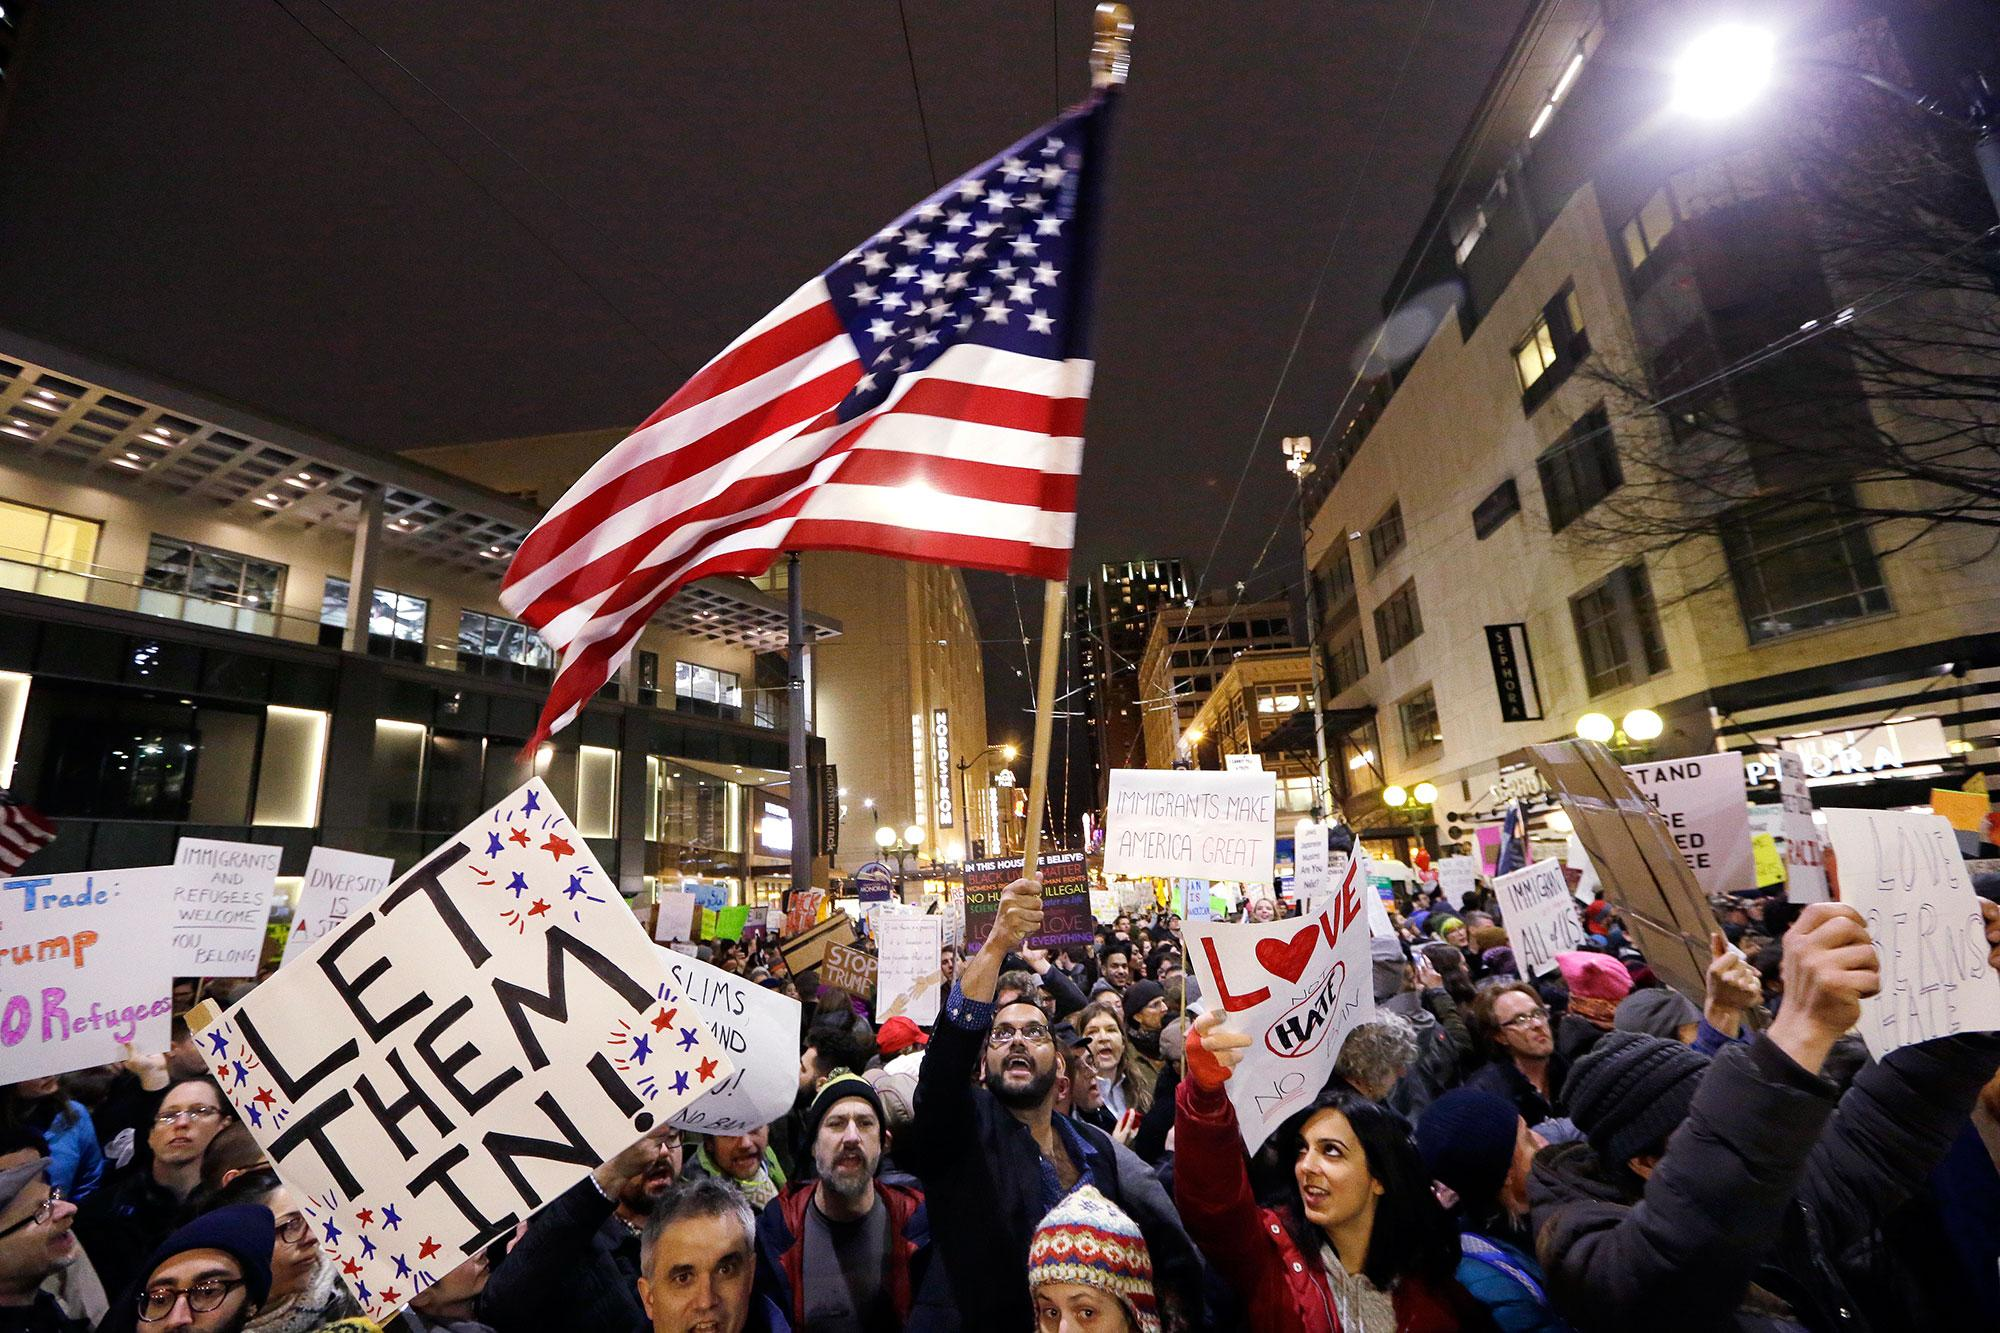 <p>People cheer during a rally to oppose President Donald Trump's executive order barring people from certain Muslim nations from entering the United States, Sunday, Jan. 29, 2017, in downtown Seattle. (AP Photo/Elaine Thompson) </p>